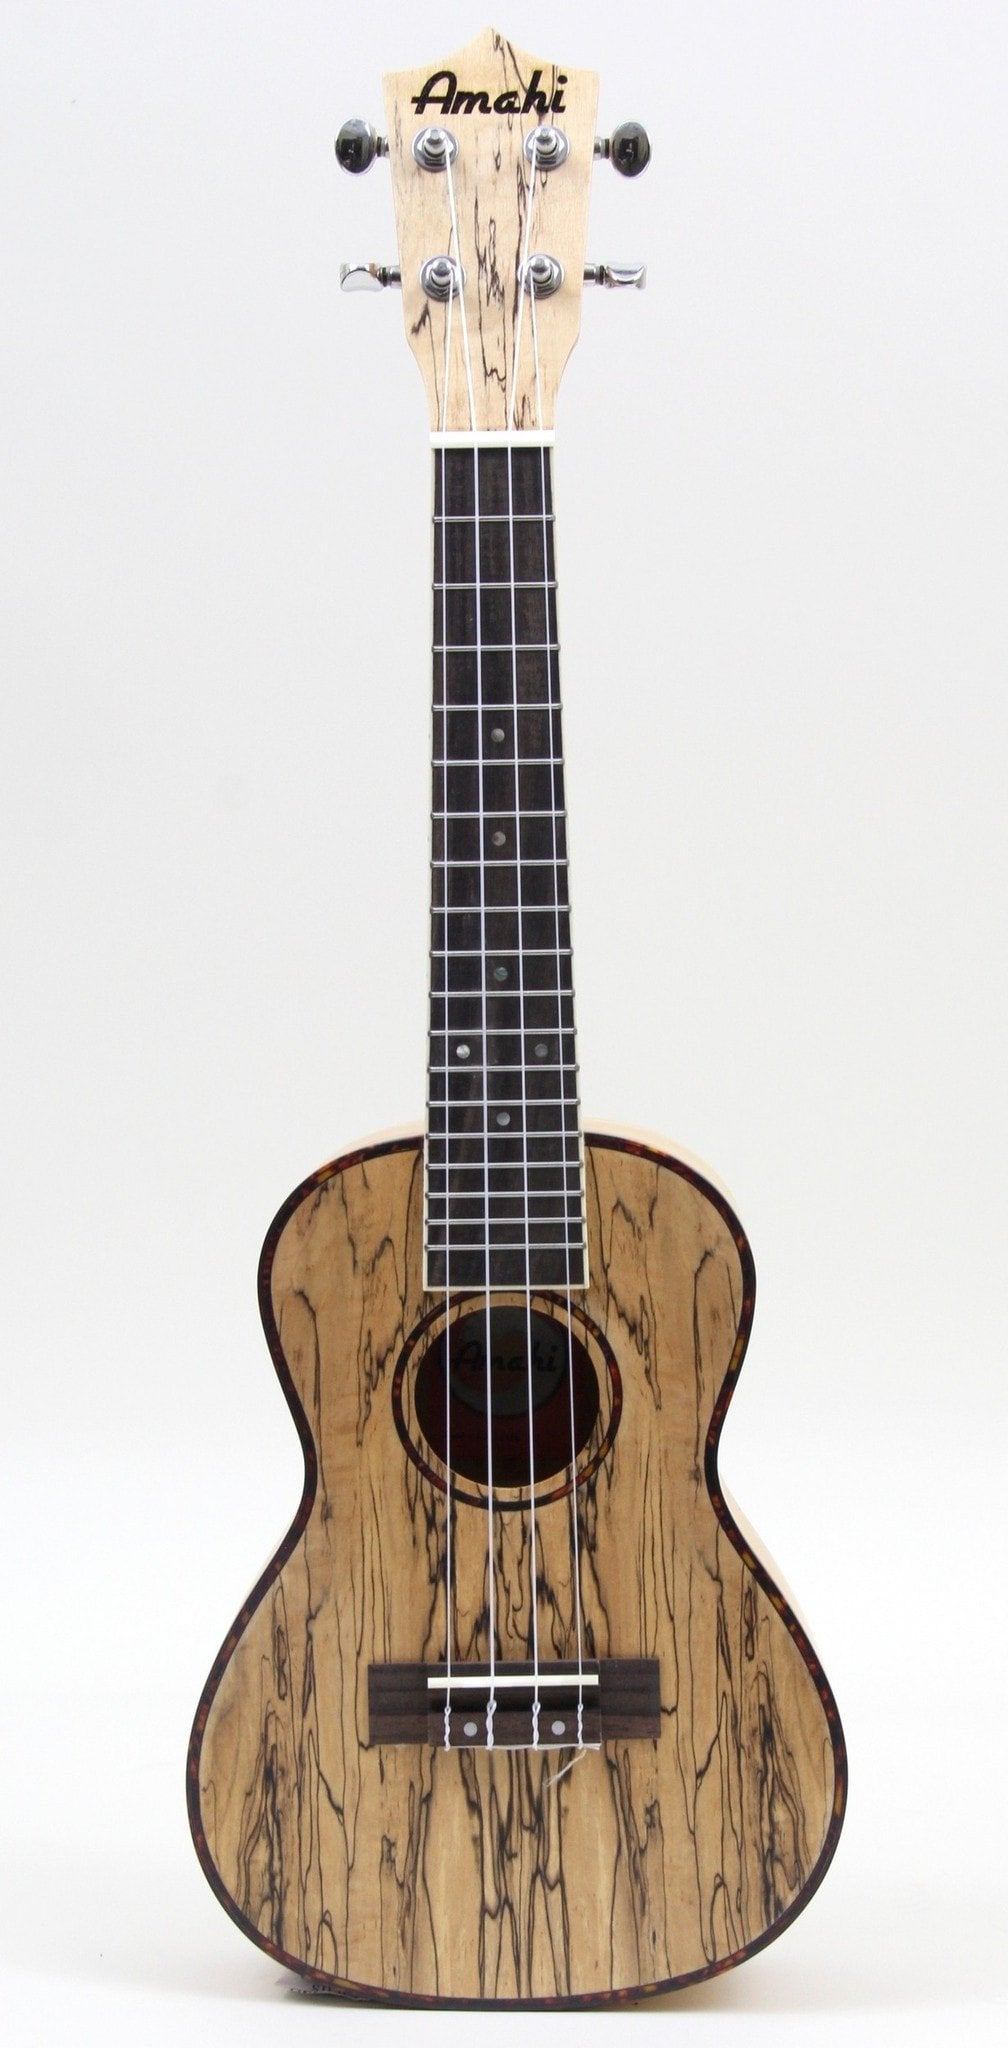 Amahi UK770 Classic Spalted Maple Ukulele Concert